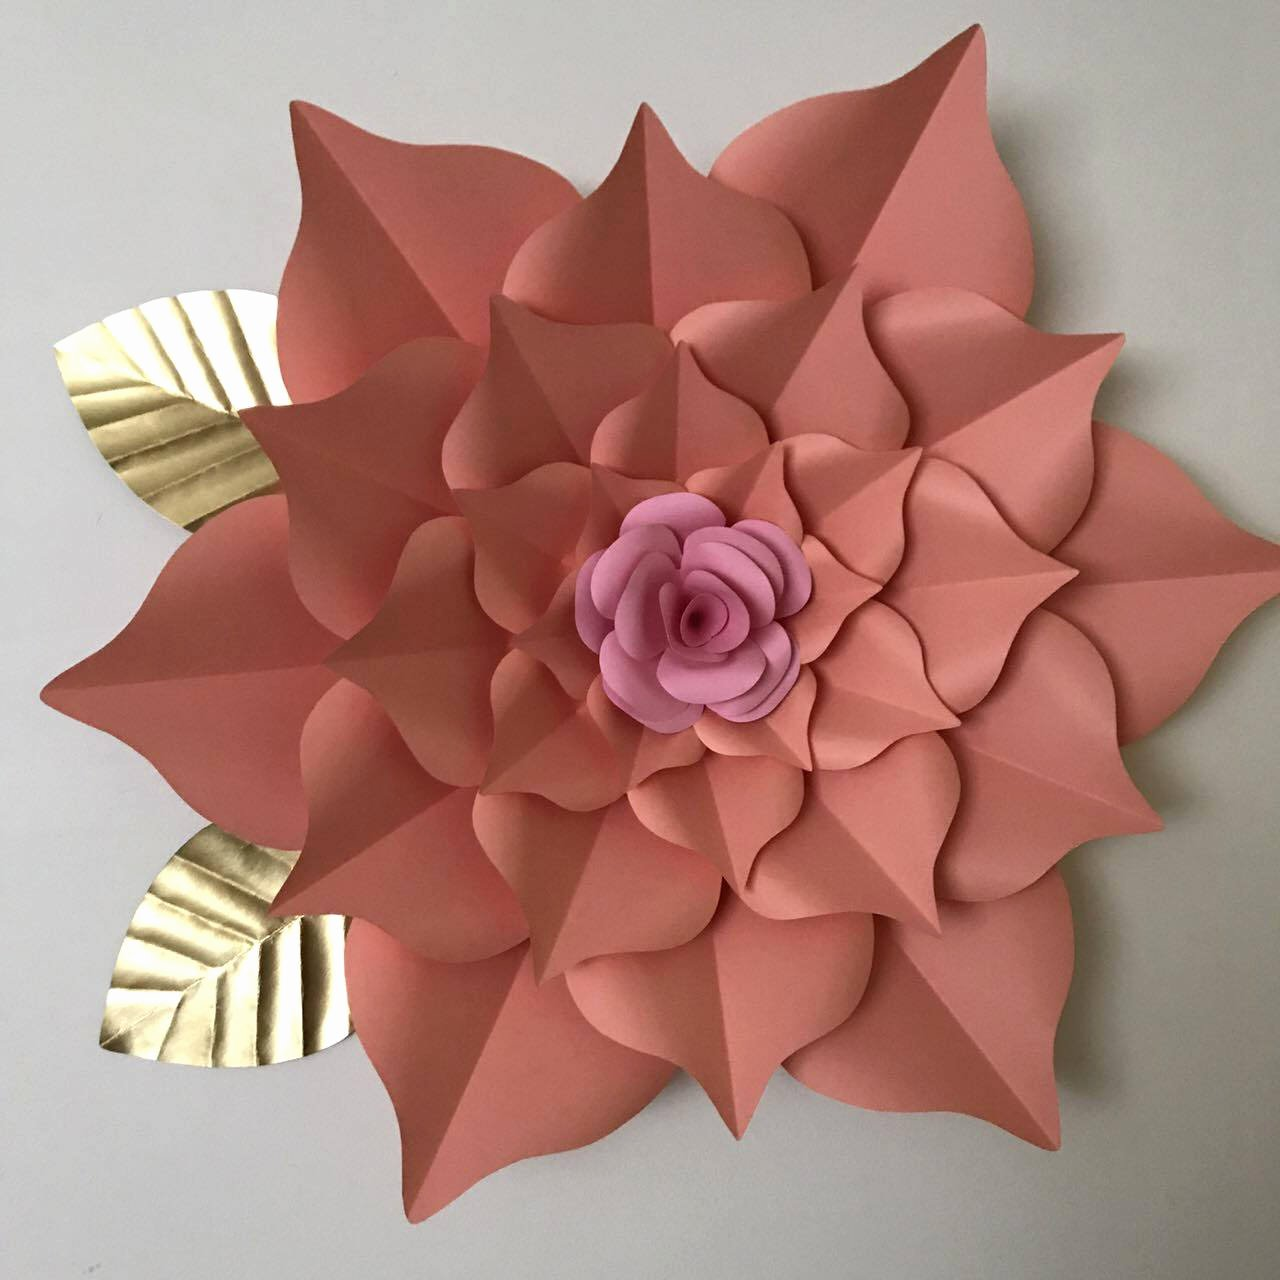 Templates for Paper Flowers Inspirational Pdf Paper Flower Template Digital Version Including the Base